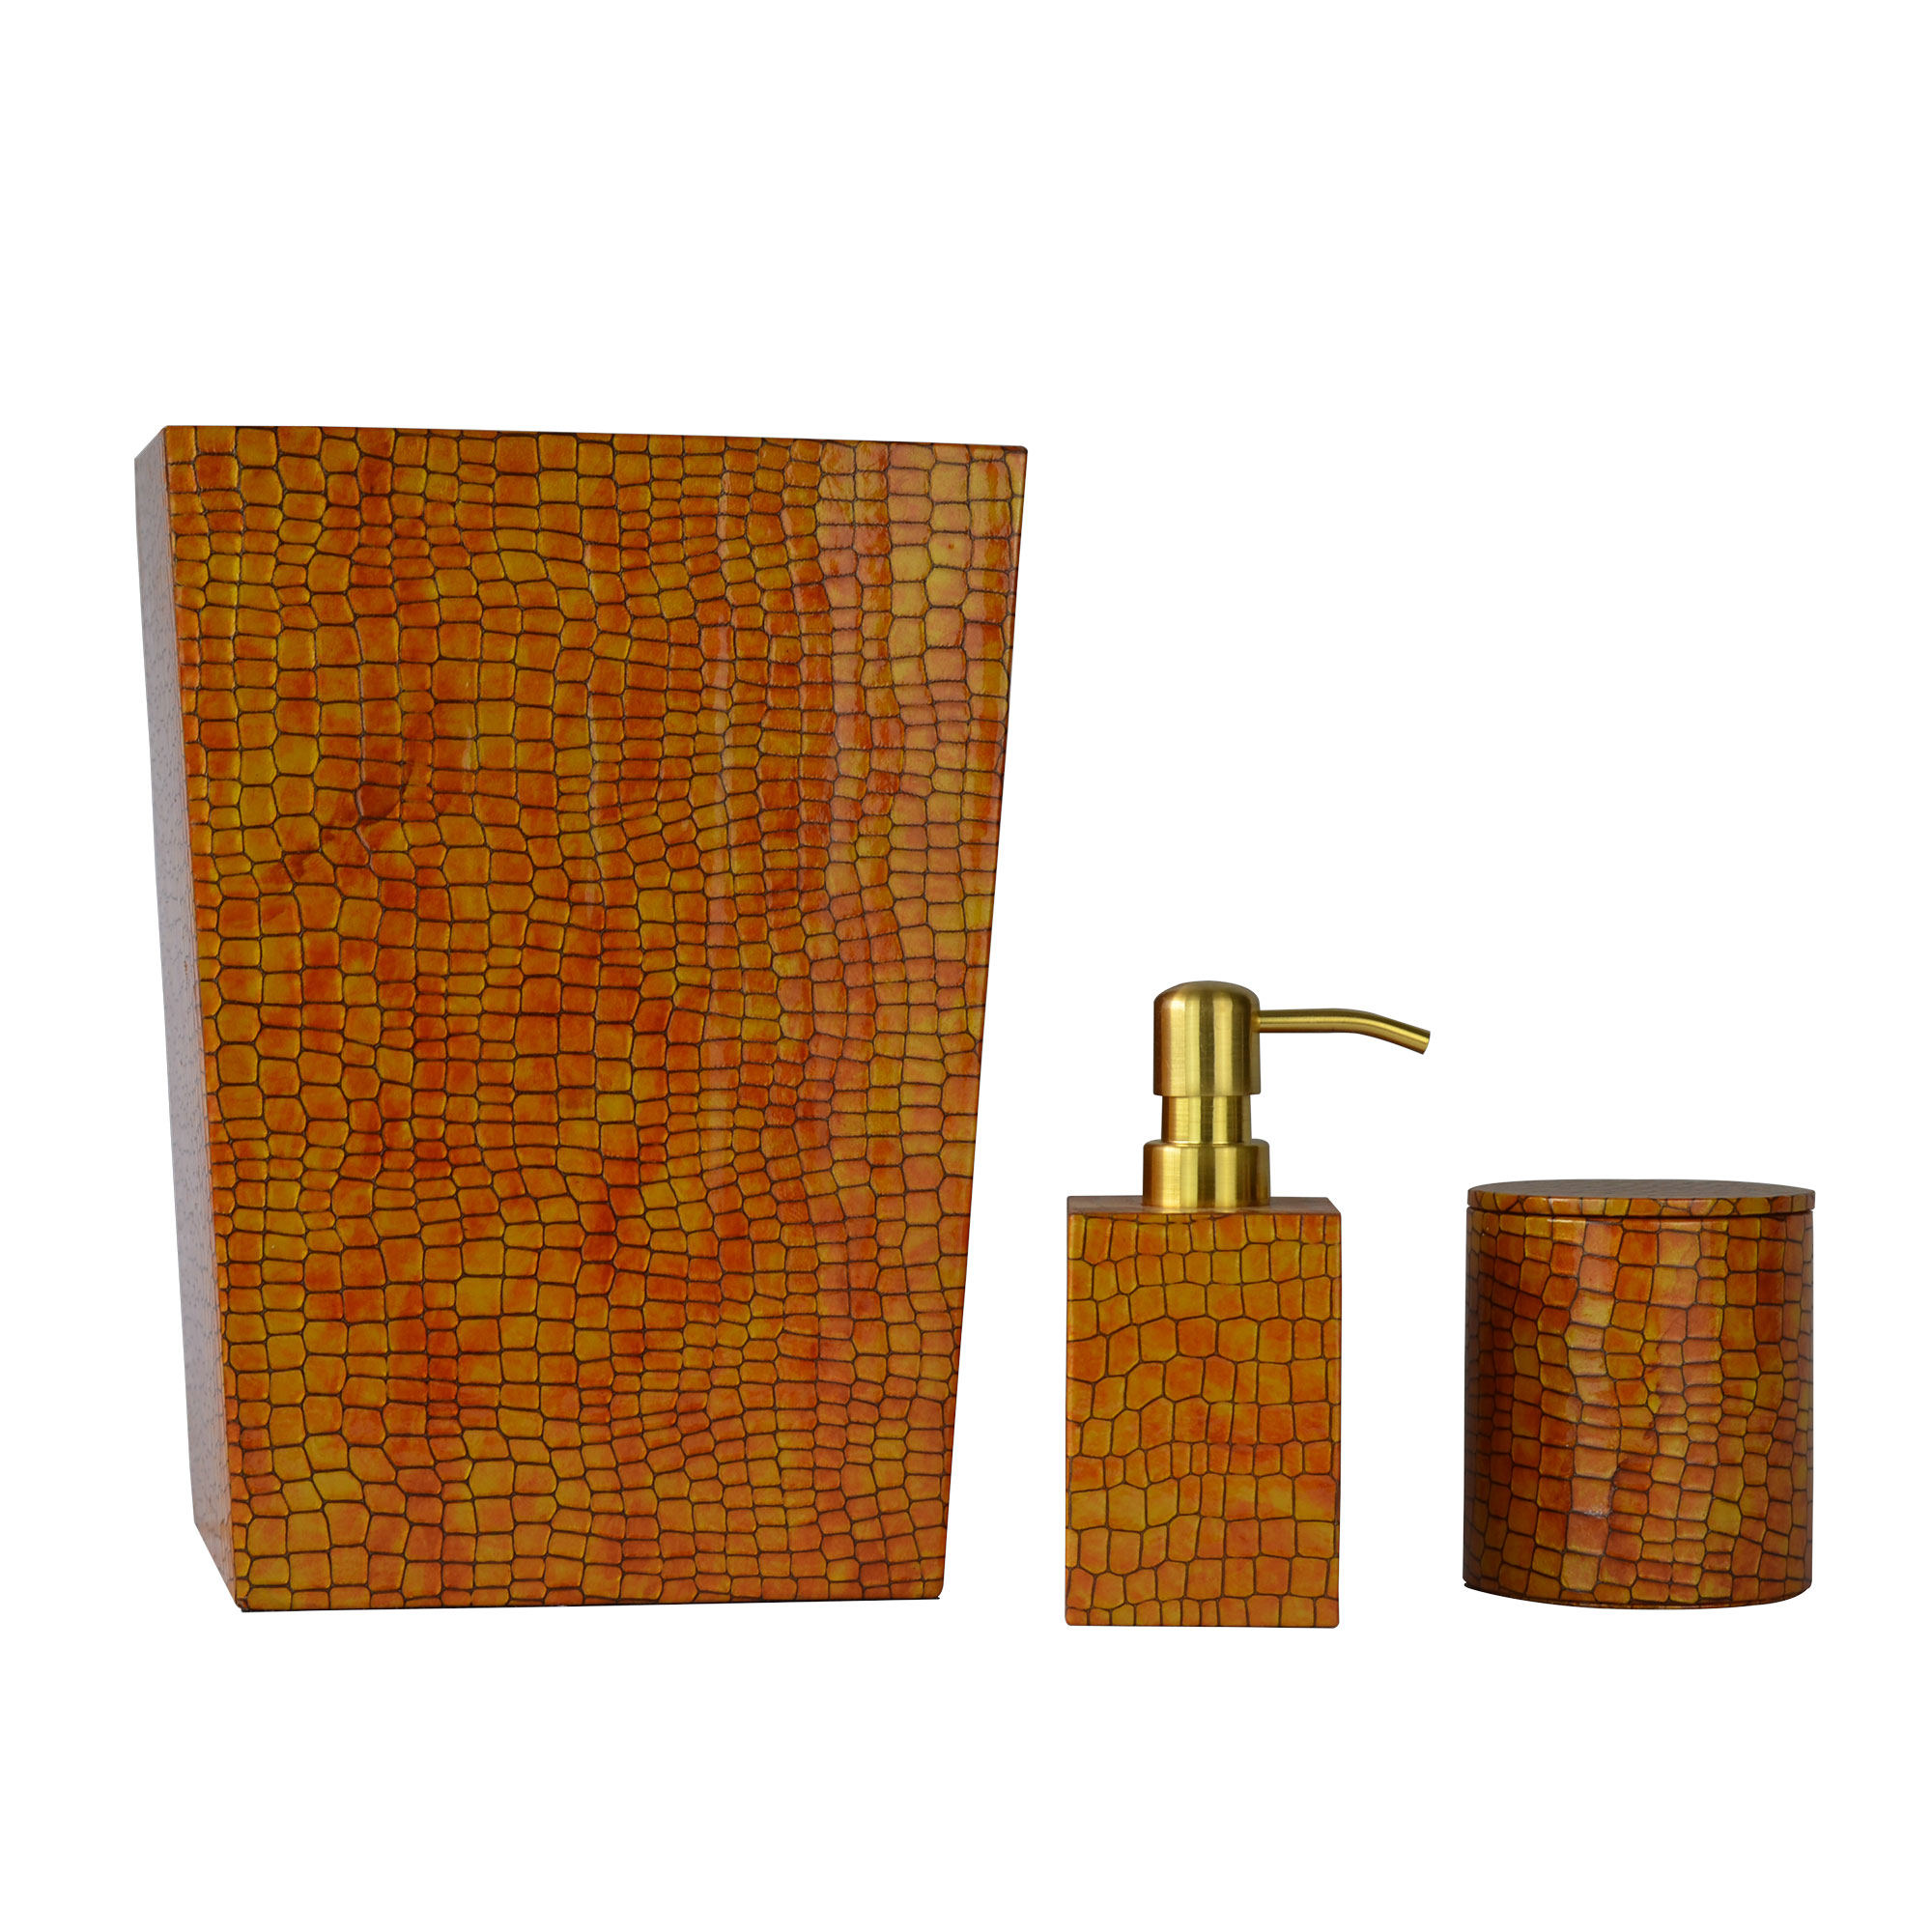 Genuine Leather 3-Piece Bath Set, Honey Comb, Shower and Bathroom Accessory by Overstock